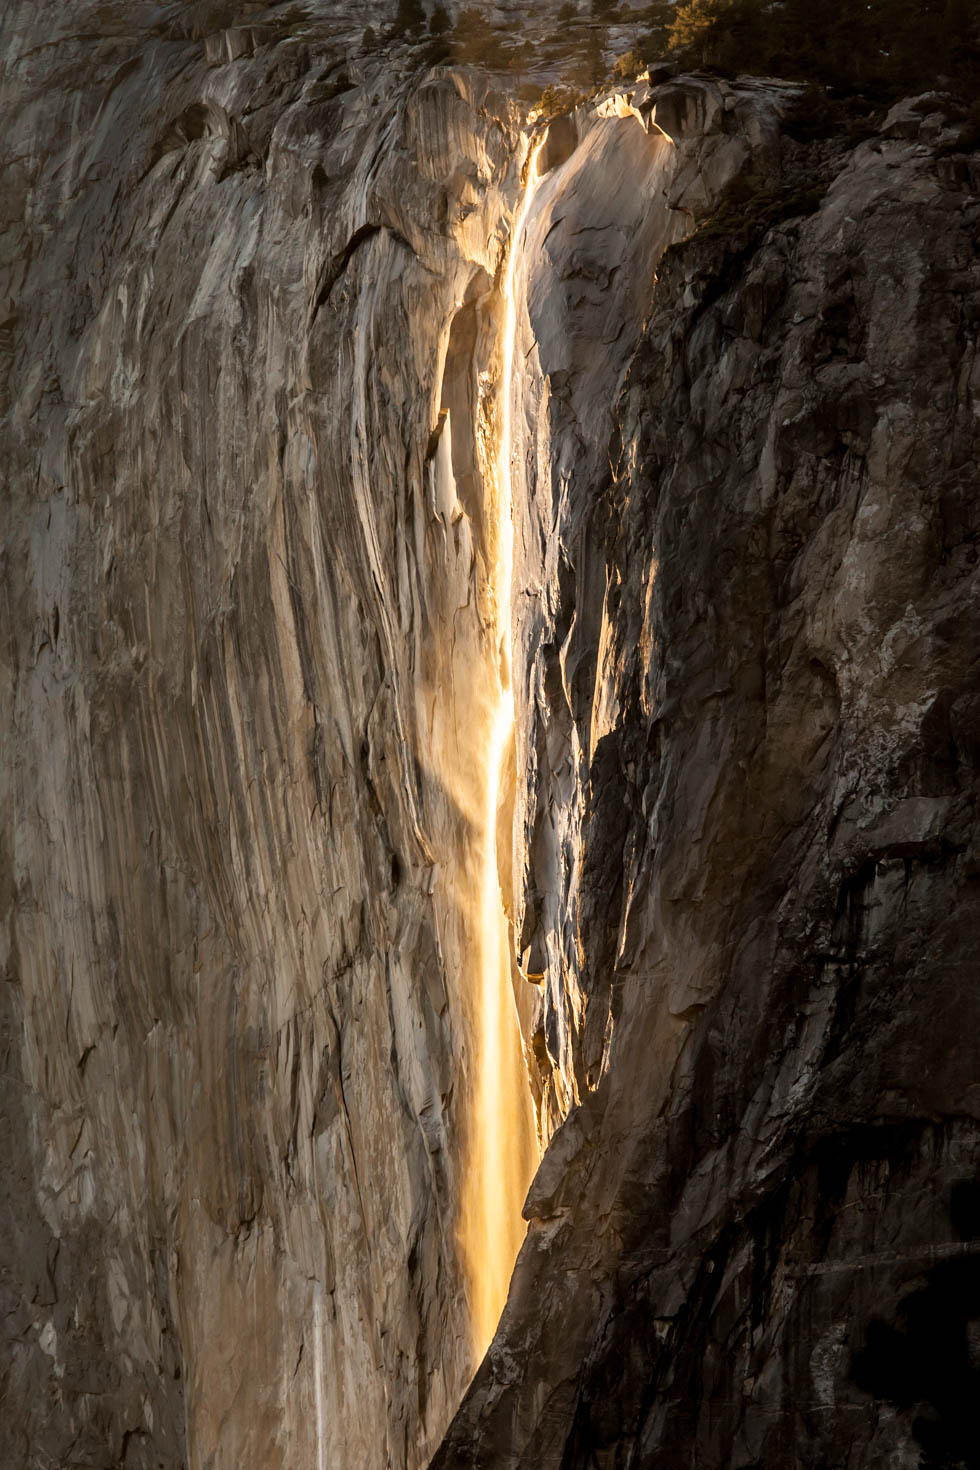 Photographing the Yosemite Firefall, Horse Tail Fall, Yosemite National Park, CA #vezzaniphotography